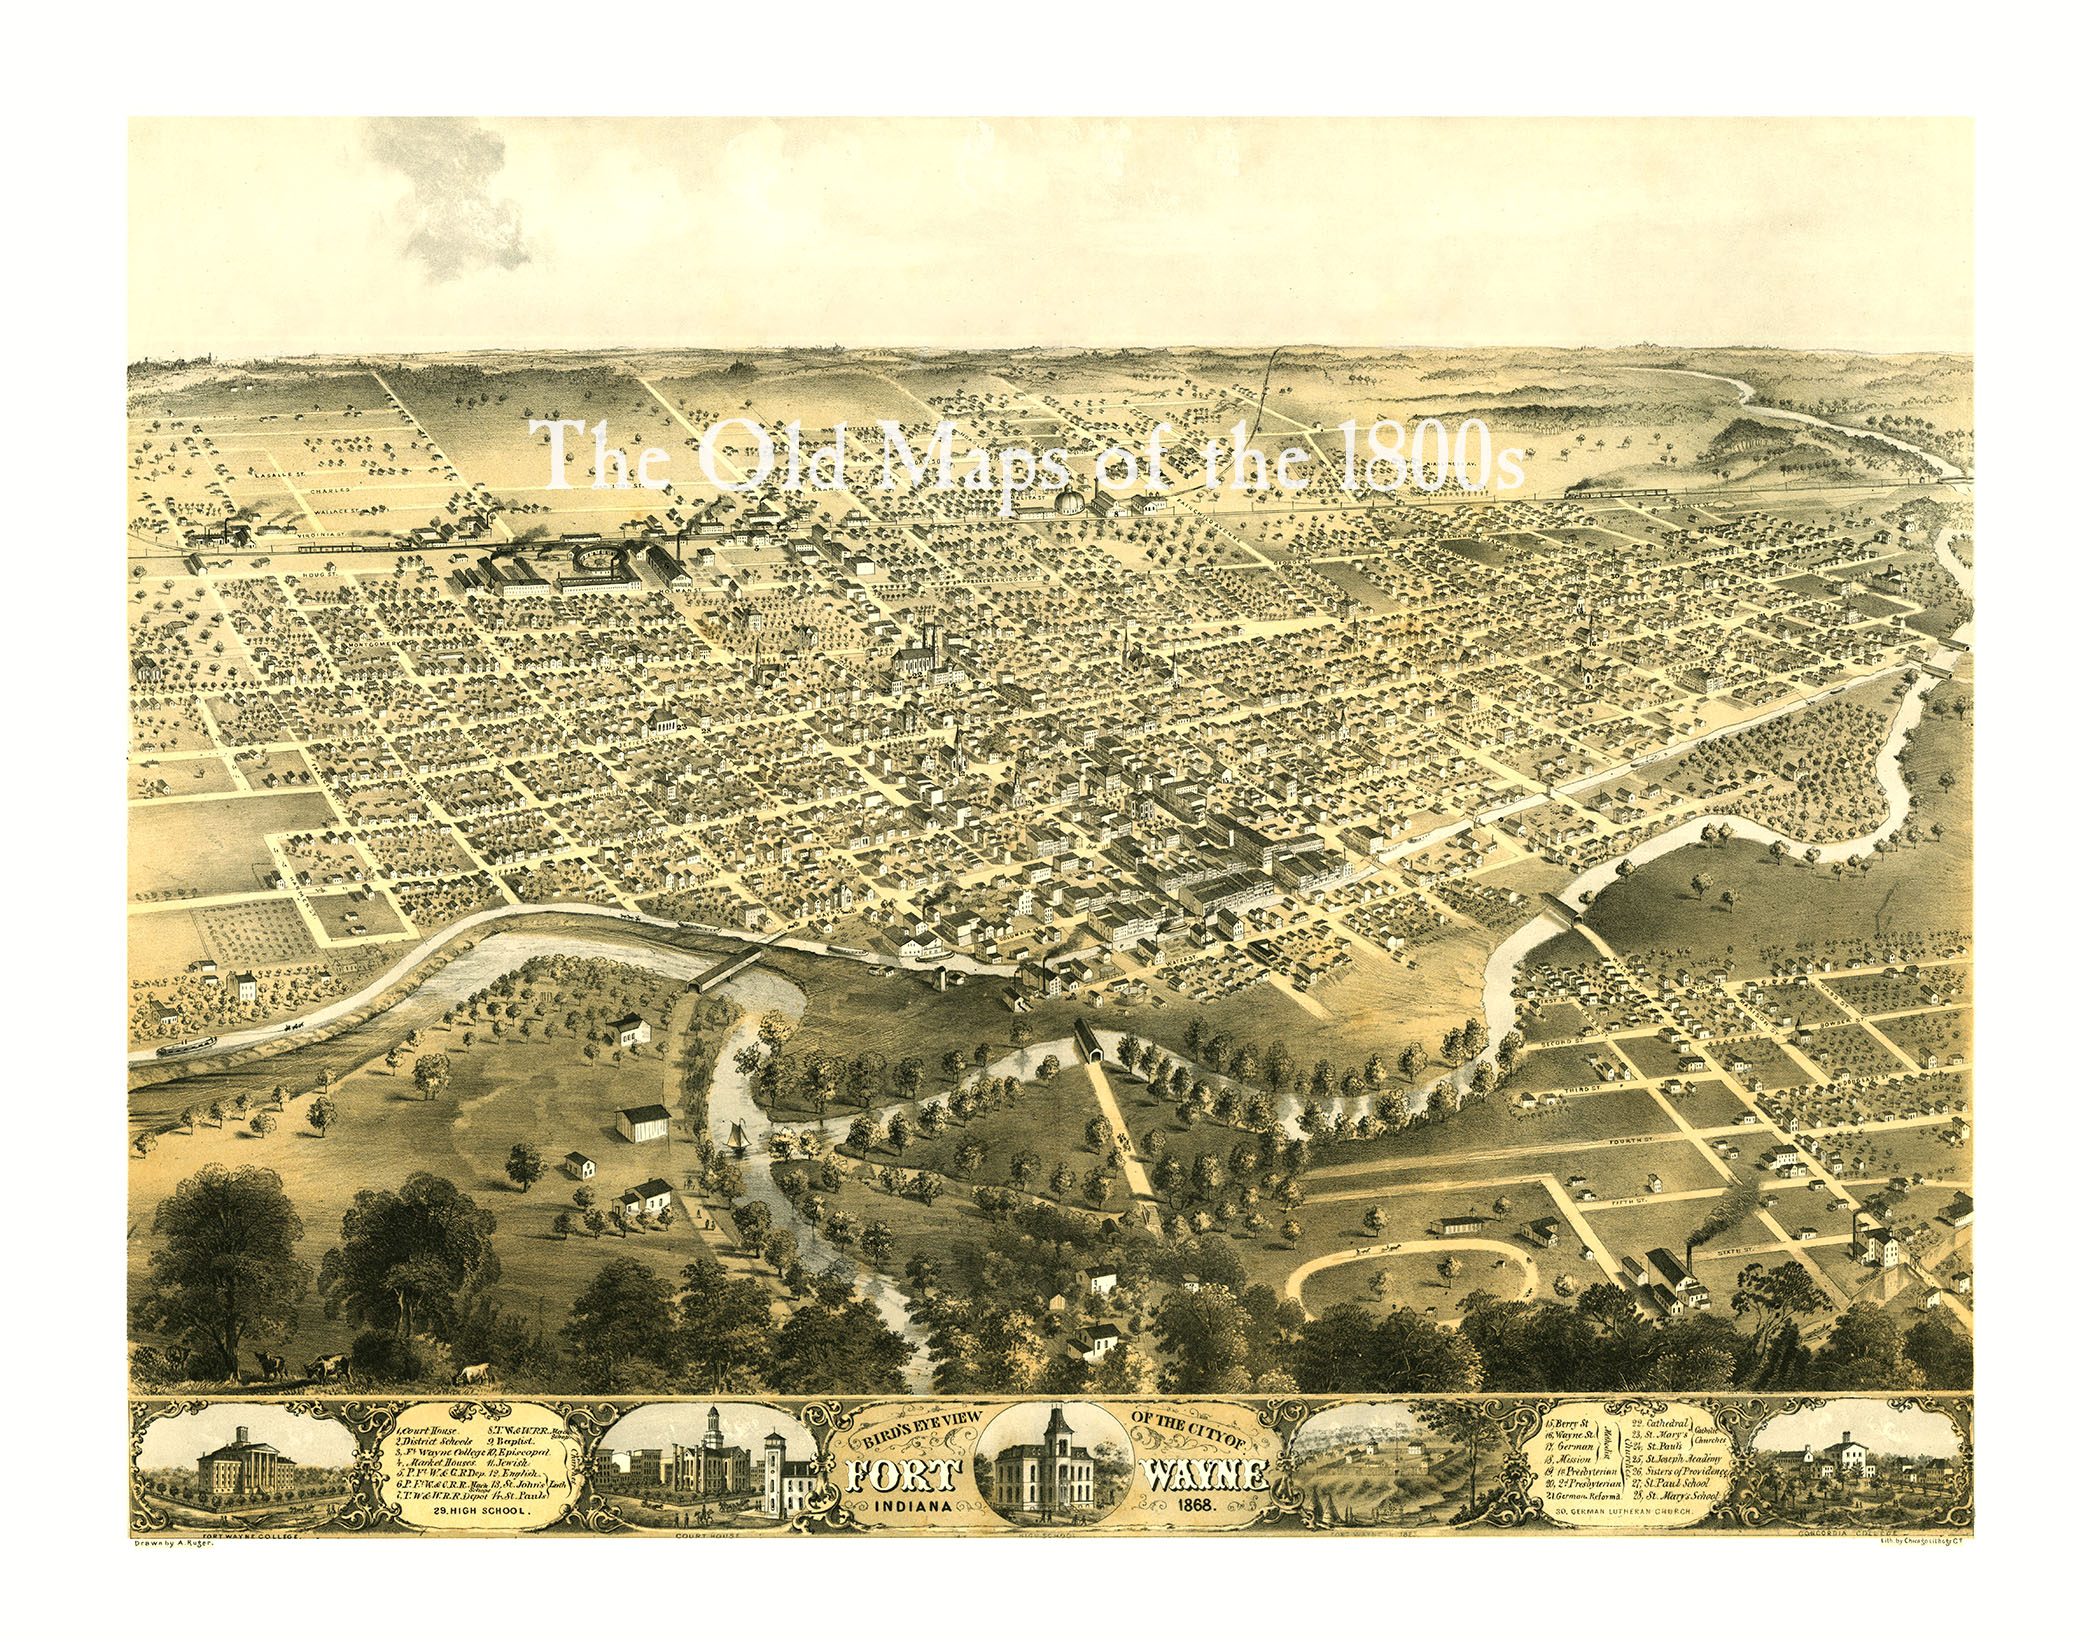 Home · The Old Maps of the 1800s · Online Store Powered by Storenvy